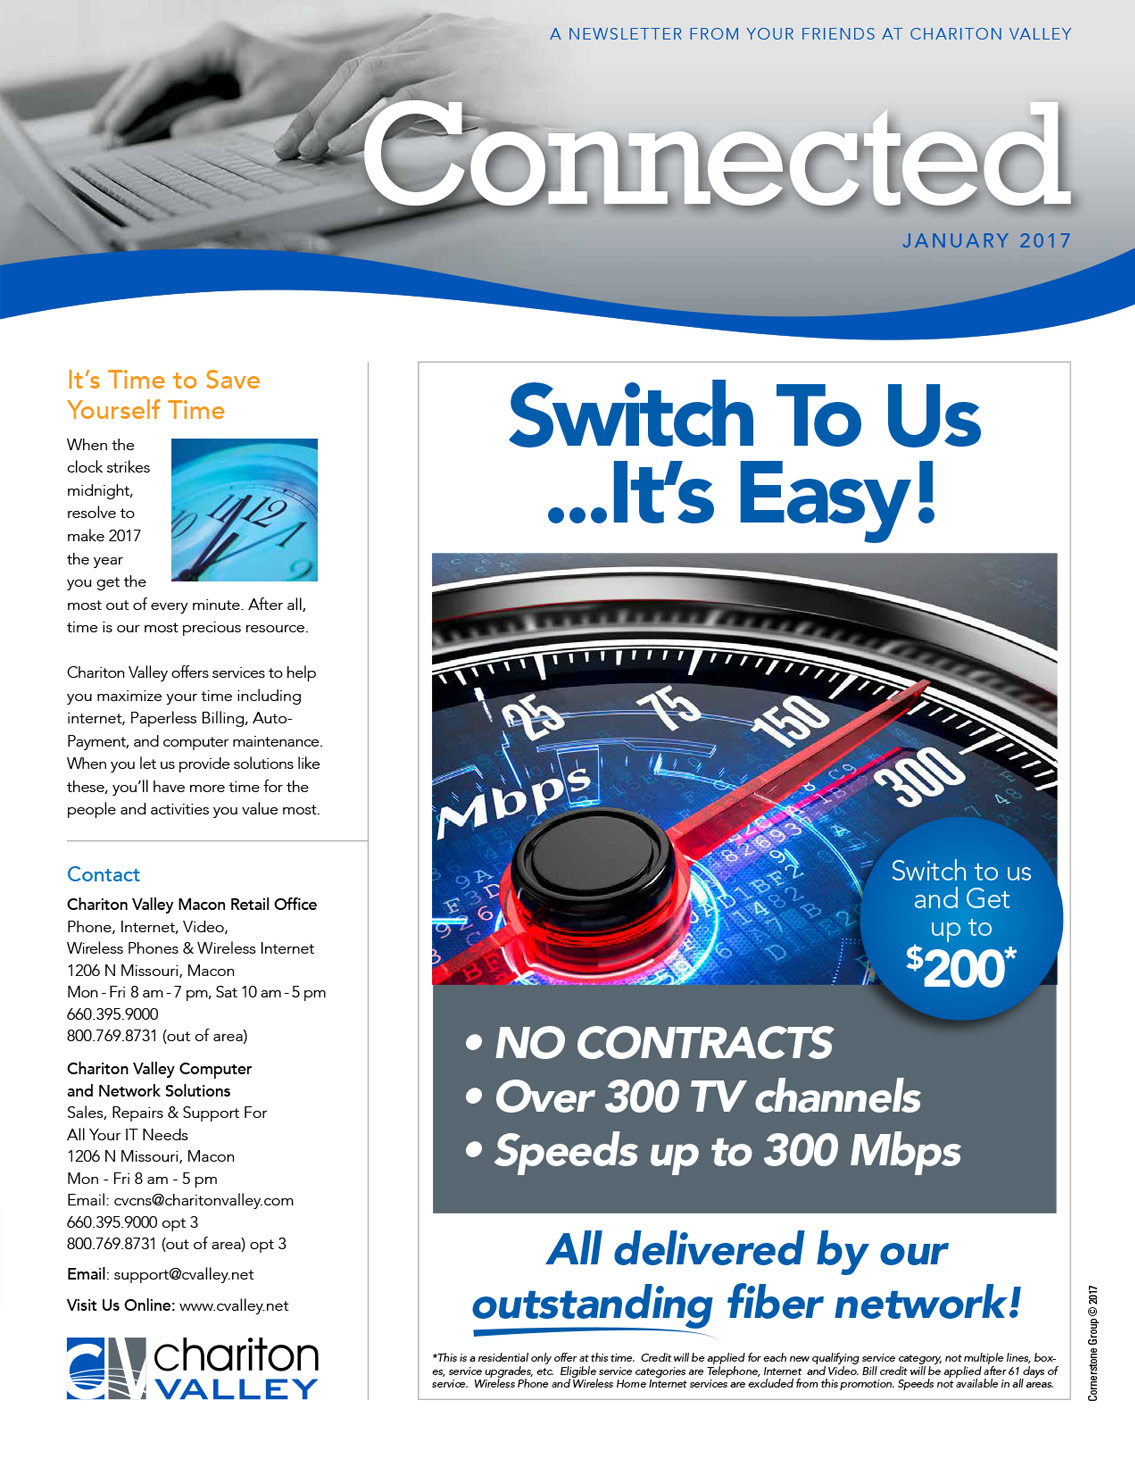 internet service provider hybrid print newsletter sample 1